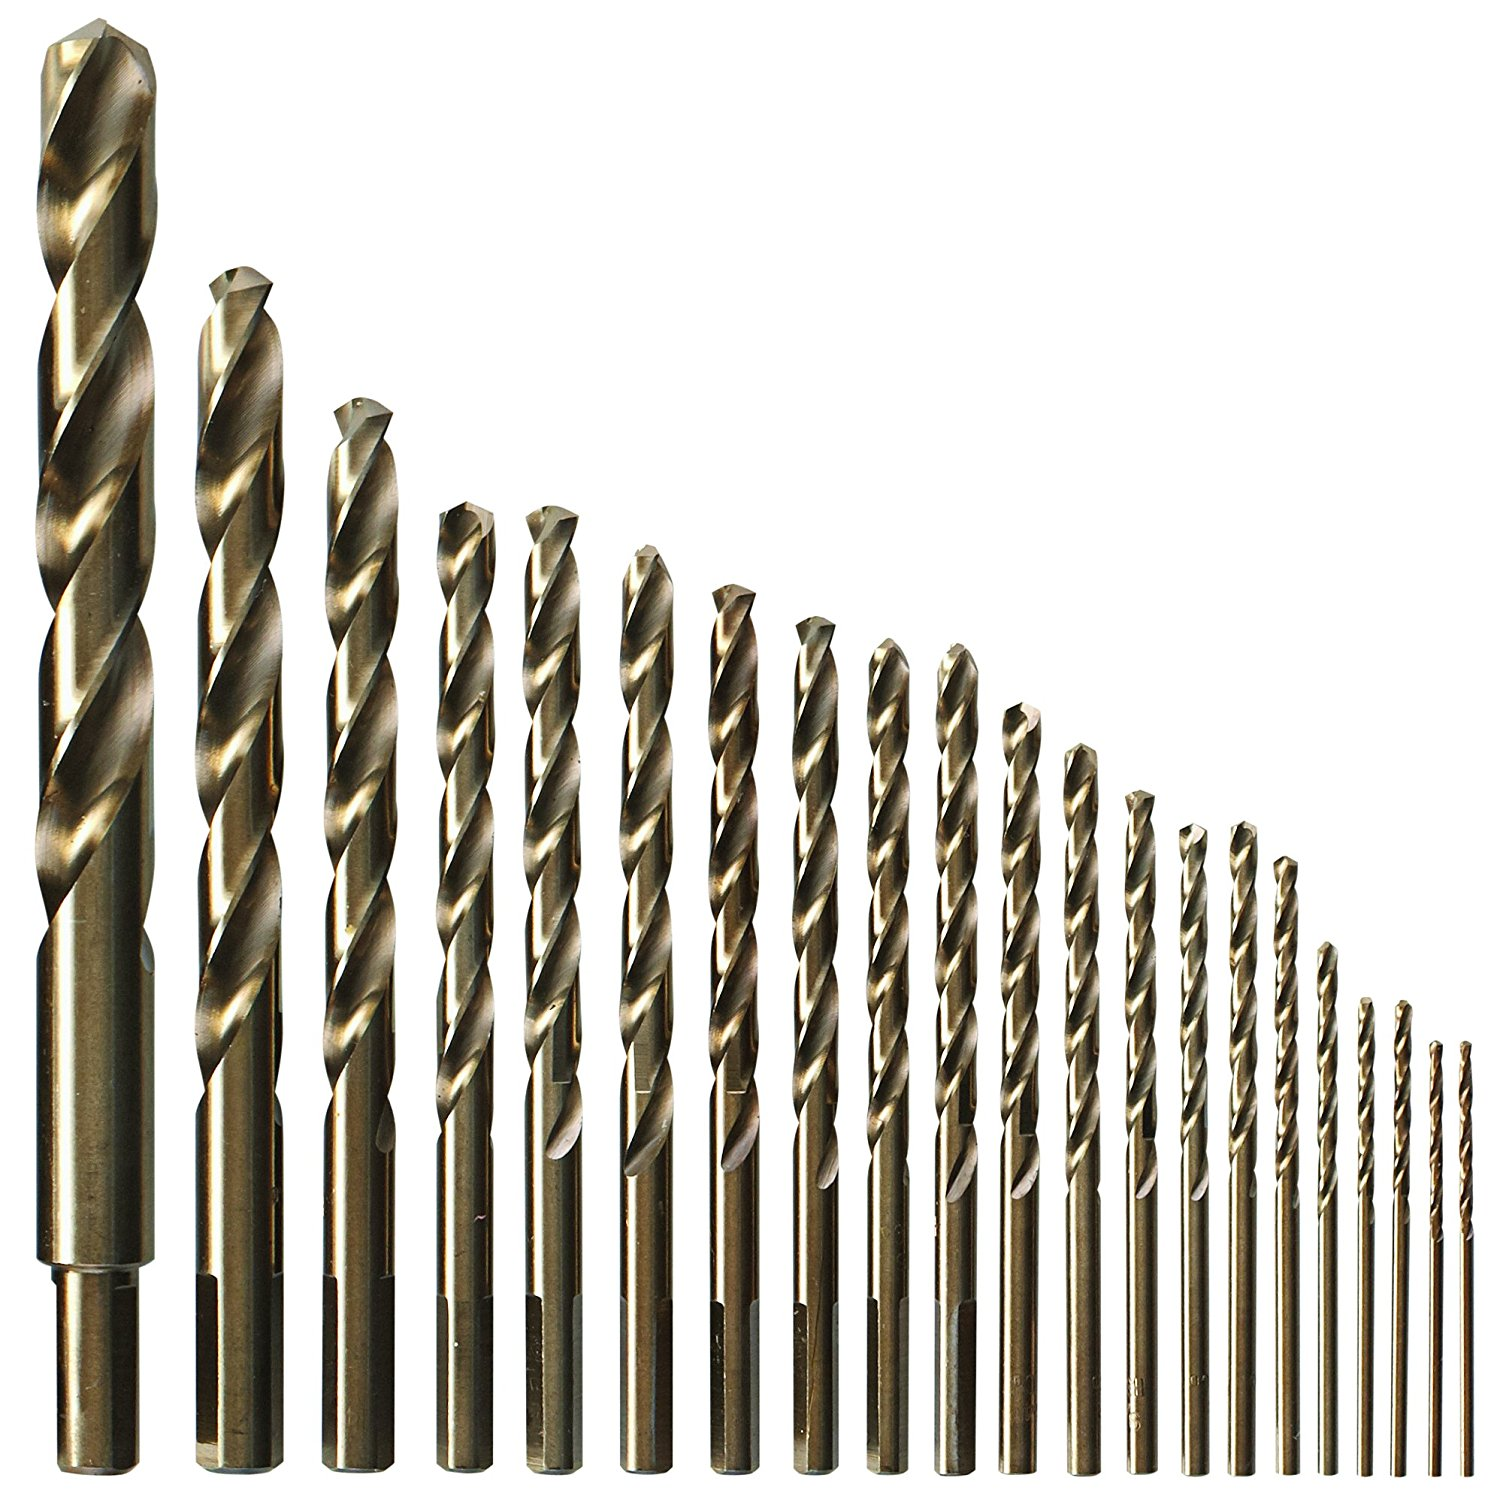 Fastener drill bits drivers mudge fasteners metal drill bit setg greentooth Image collections